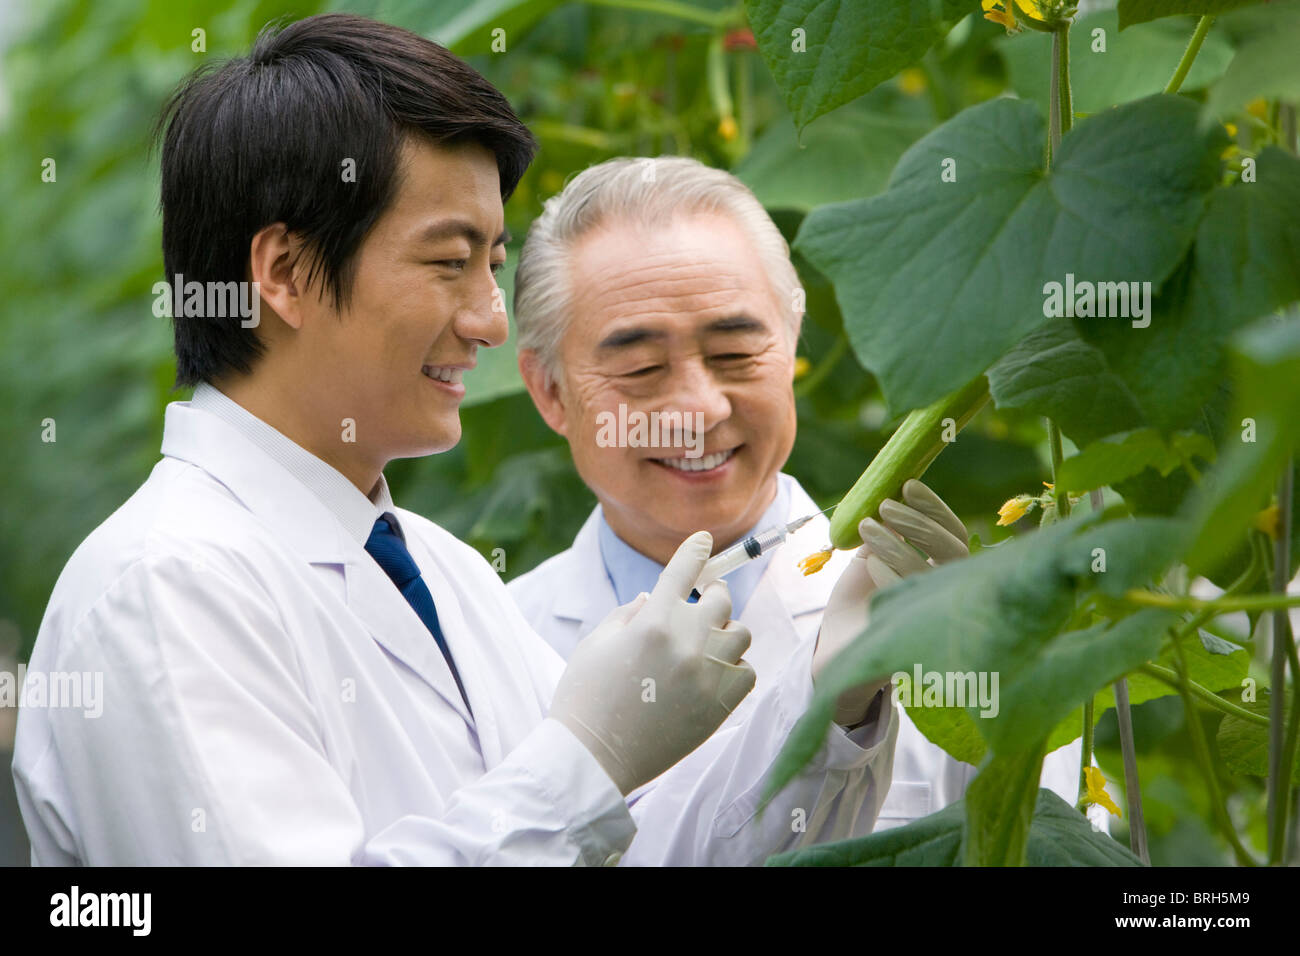 Scientists doing research in modern farm - Stock Image